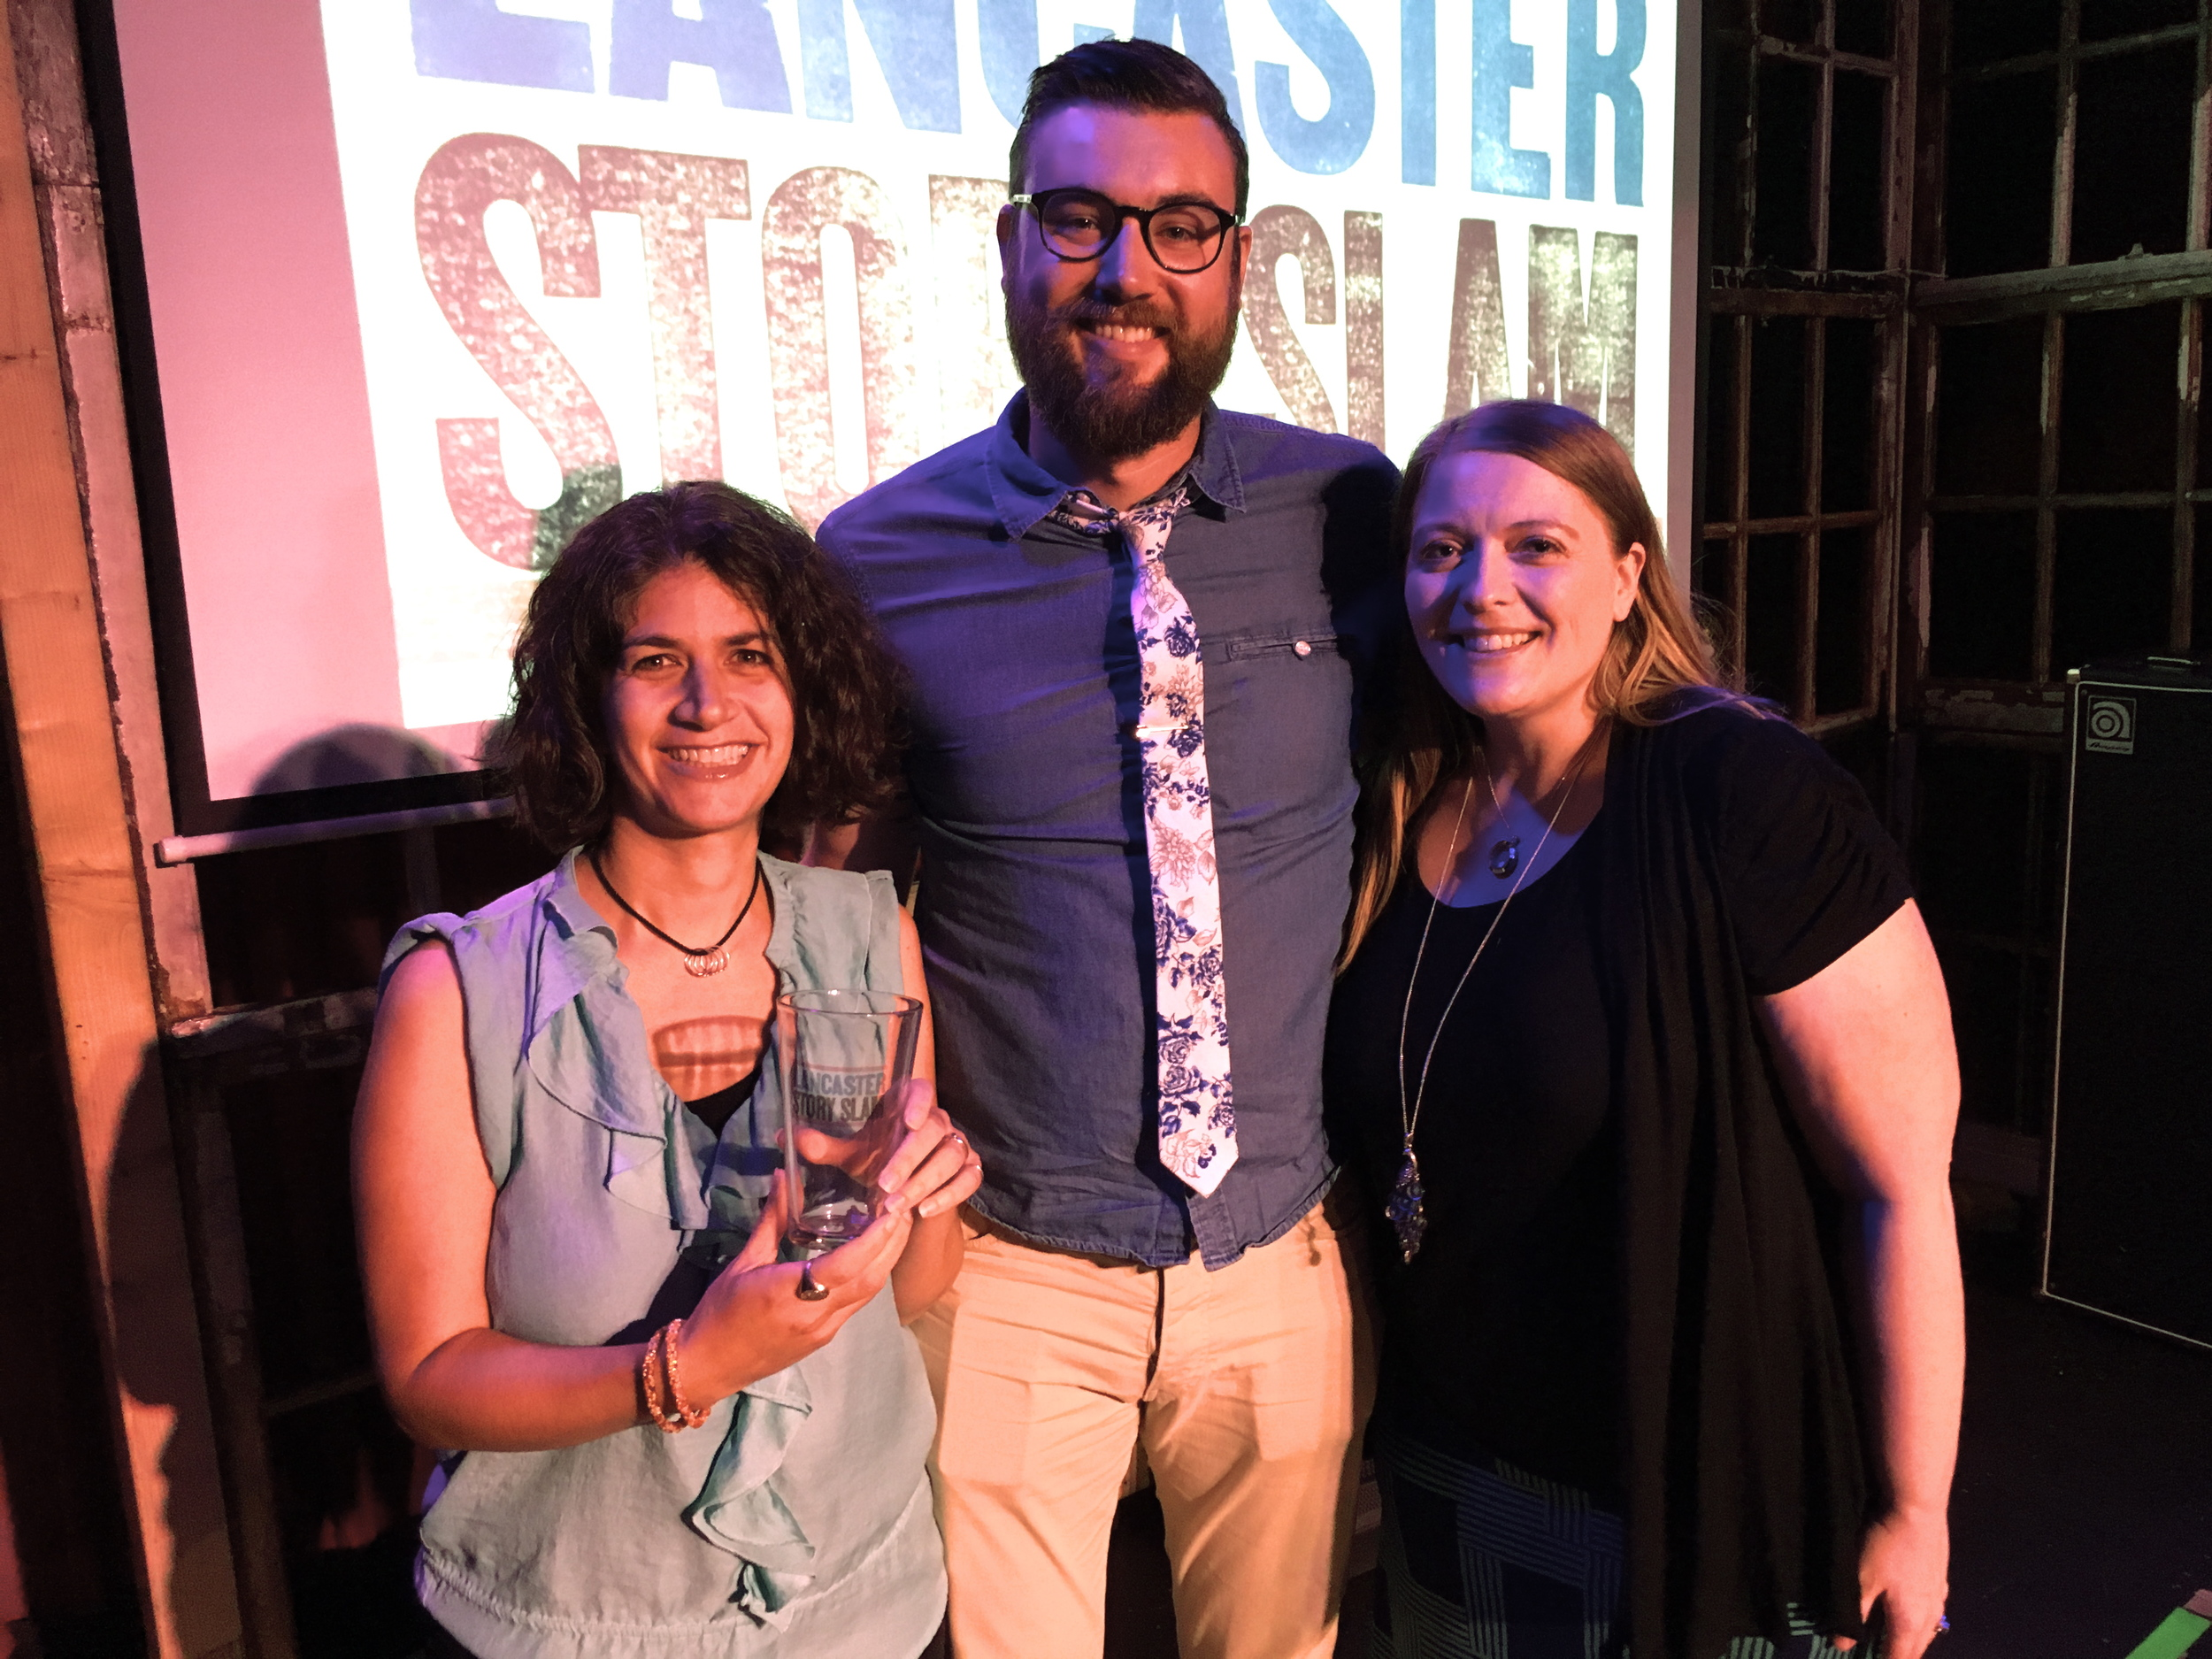 Jamie Beth and Bryan Caine pose with emcee Donna Talarico